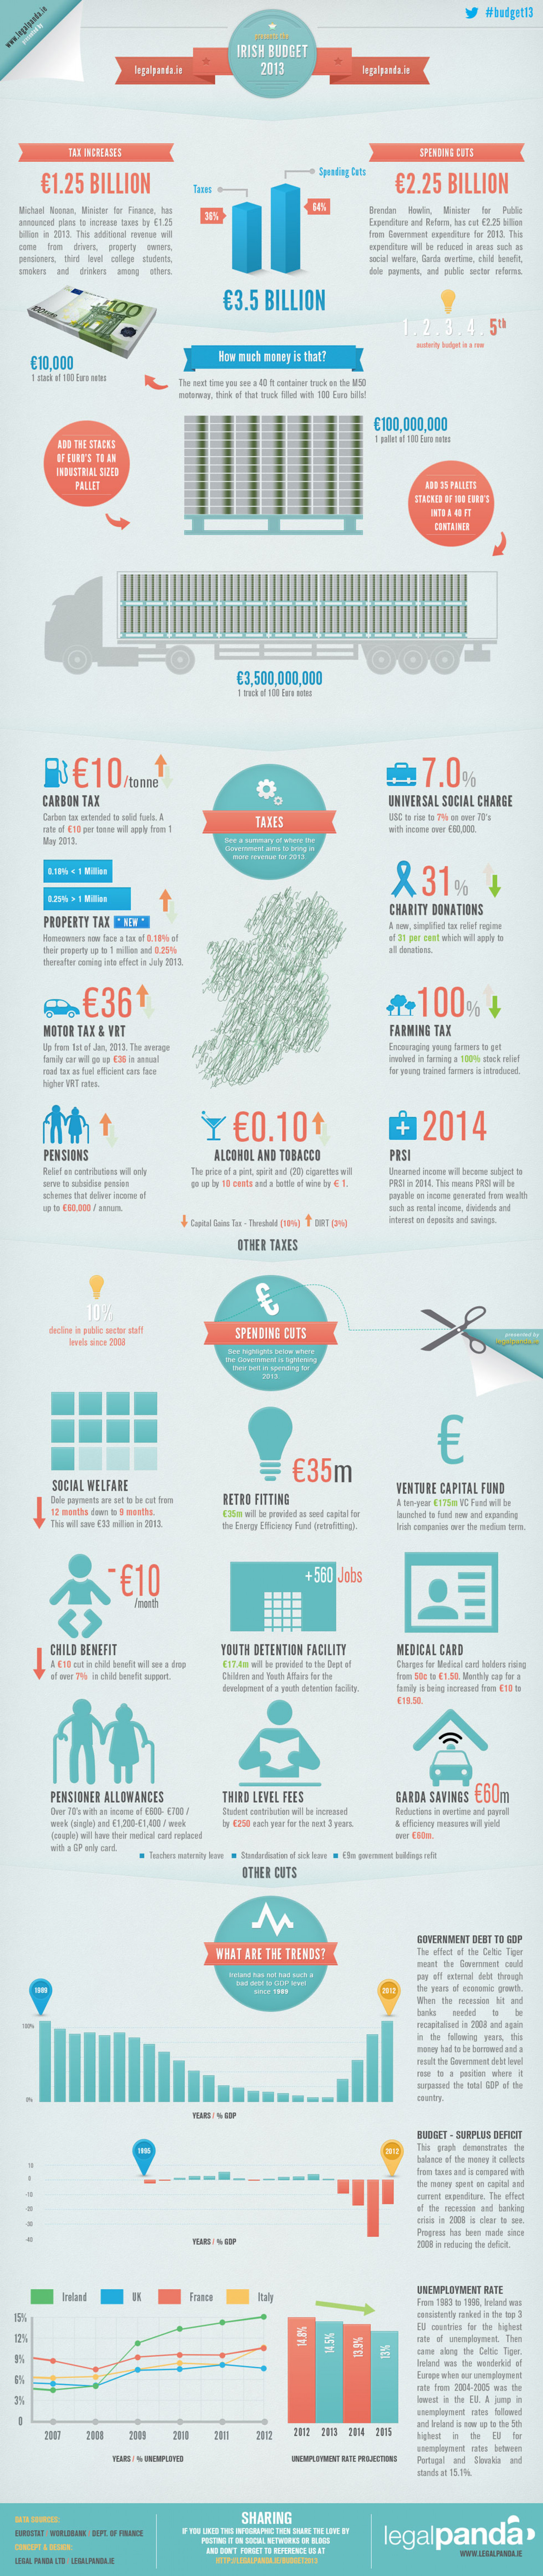 Irish Government Budget 2013 Infographic